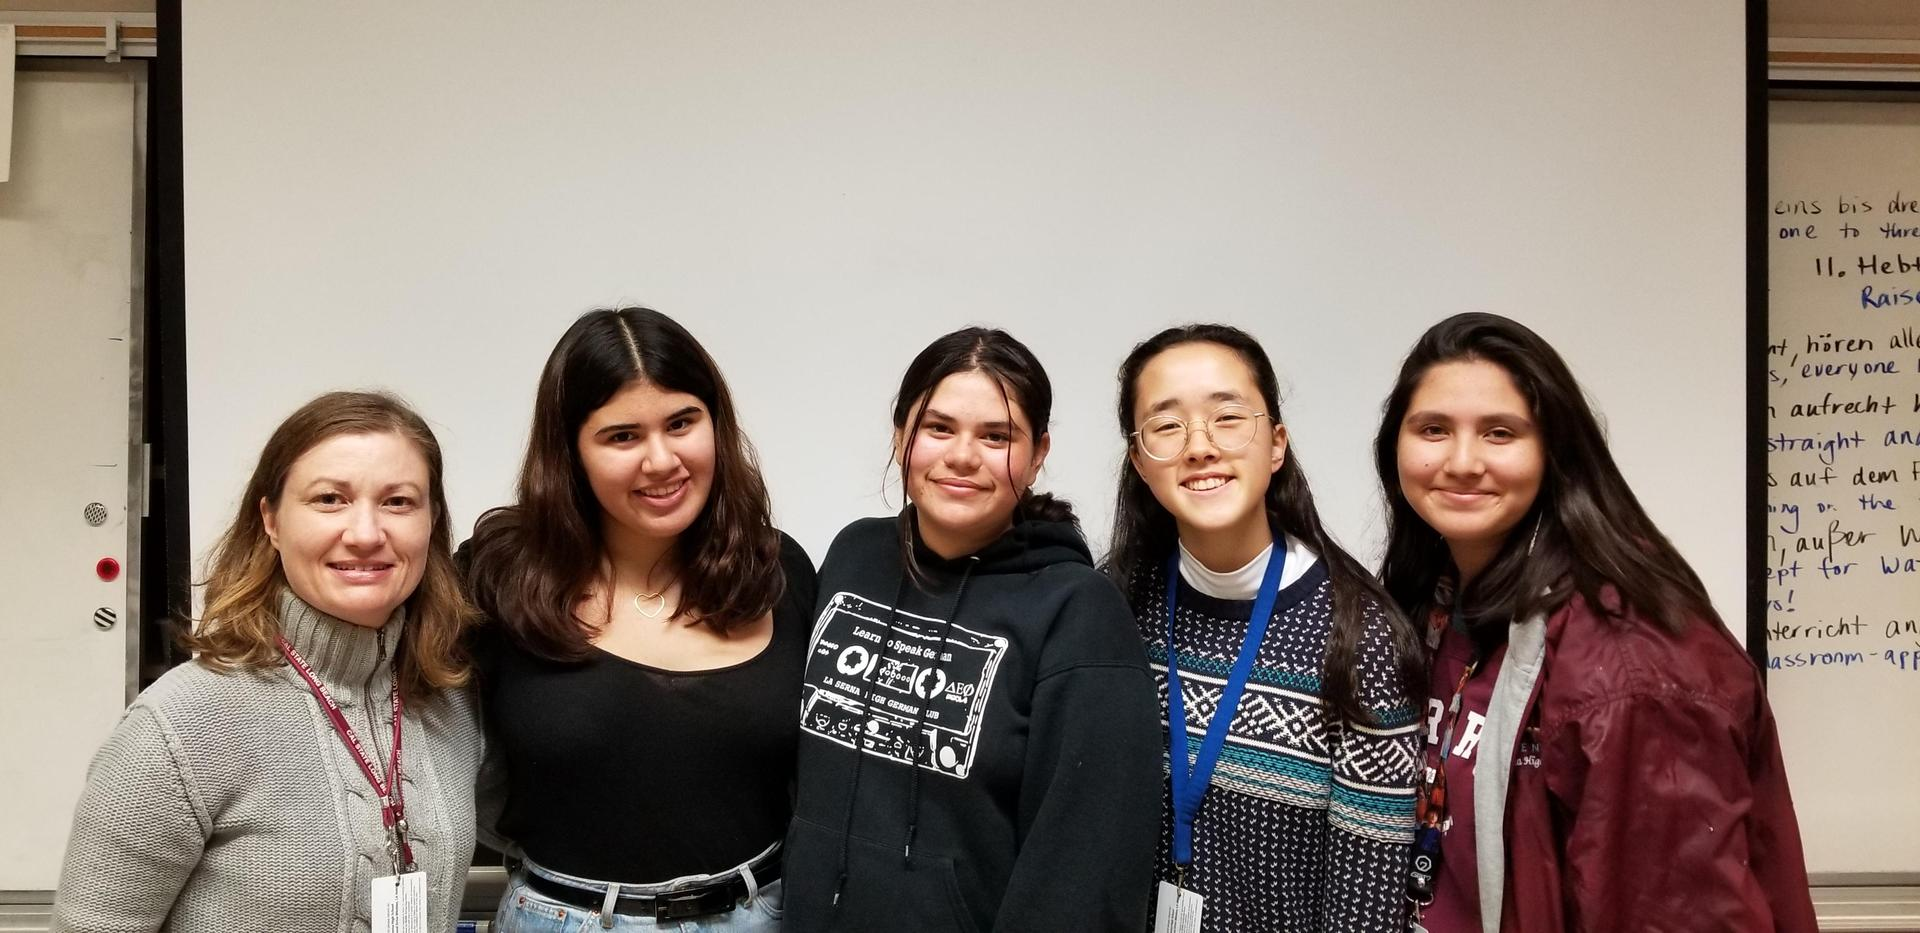 photo showing the 4 winners of the CIEE travel scholarship